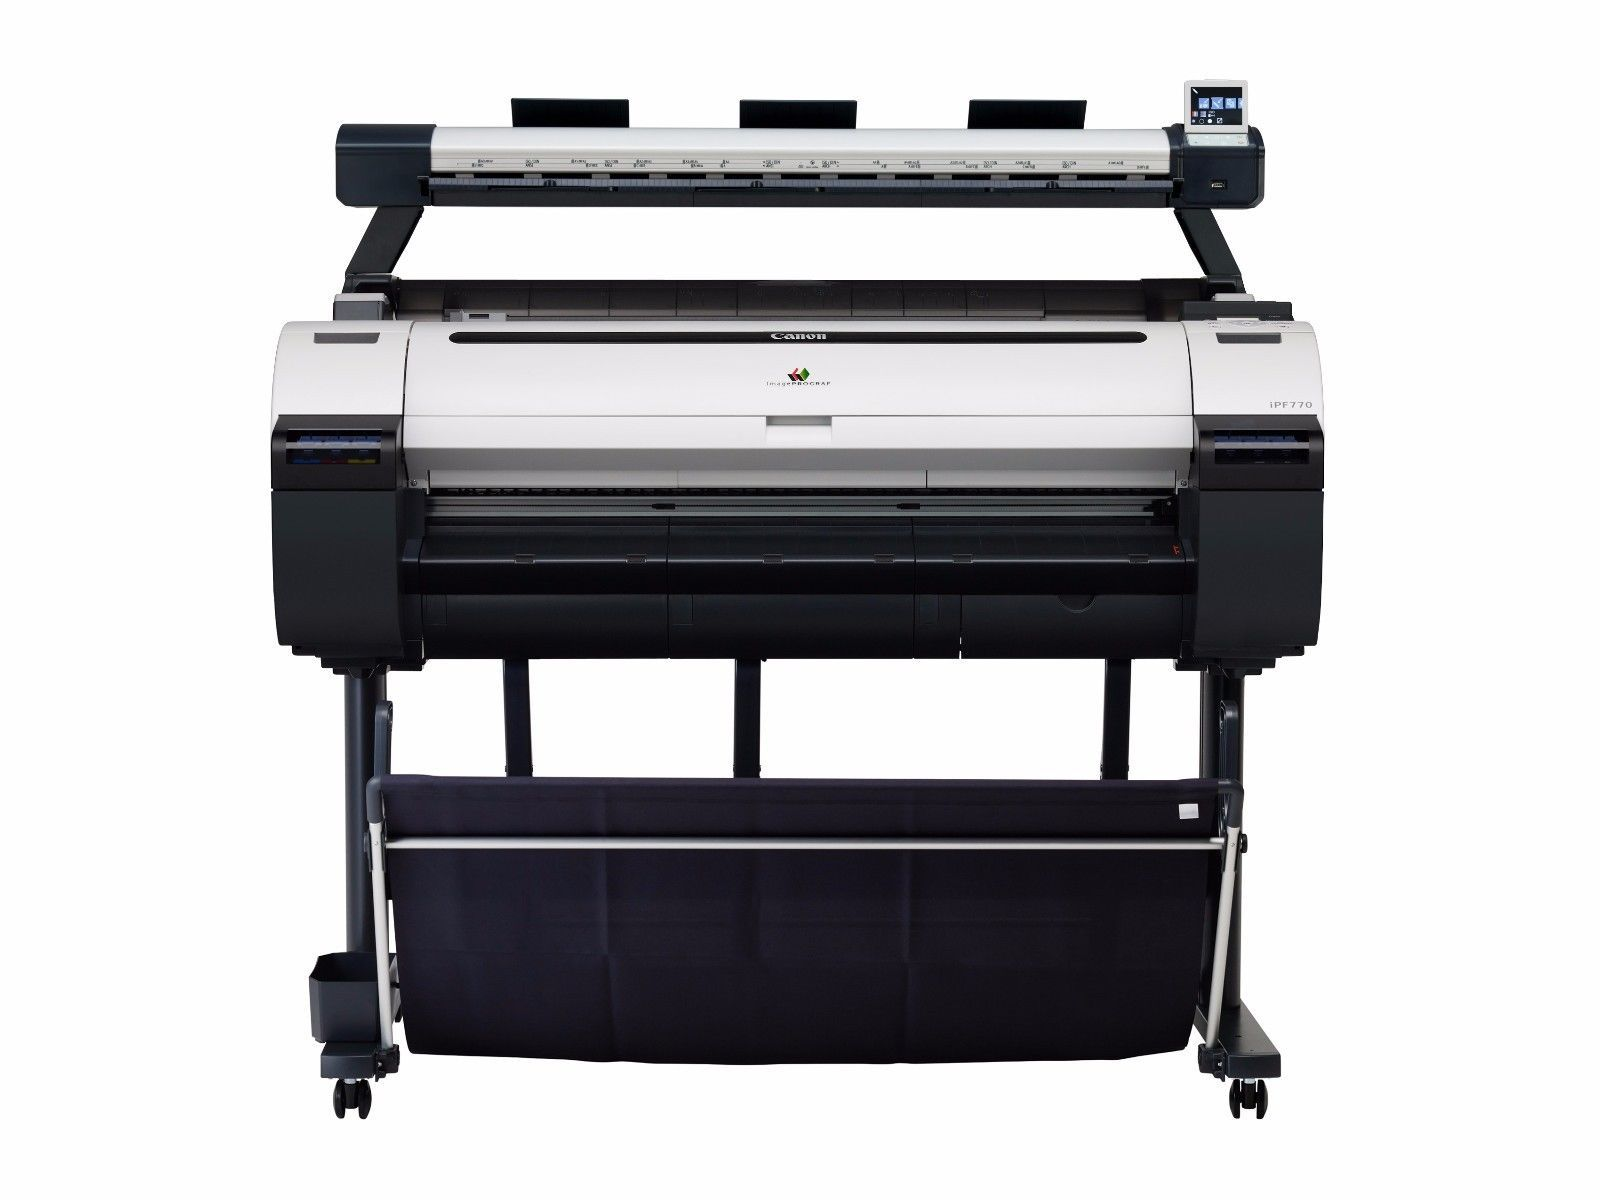 Canon ImagePROGRAF IPF770 MFP L36 36 Color Print Copy Scan Lease